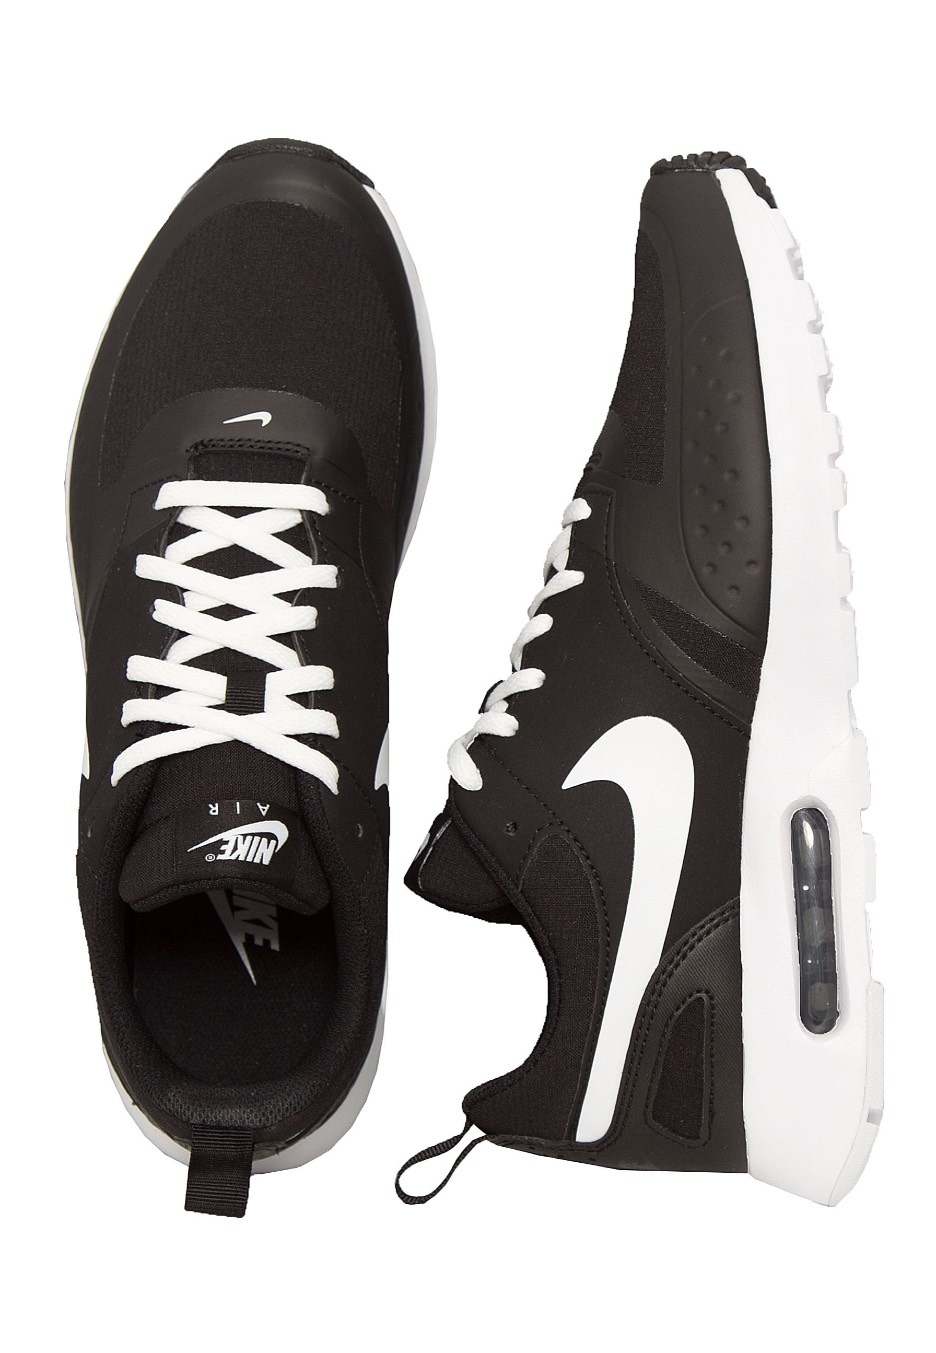 d2236cd7c9af Nike - Air Max Vision Black White White - Shoes - Impericon.com US